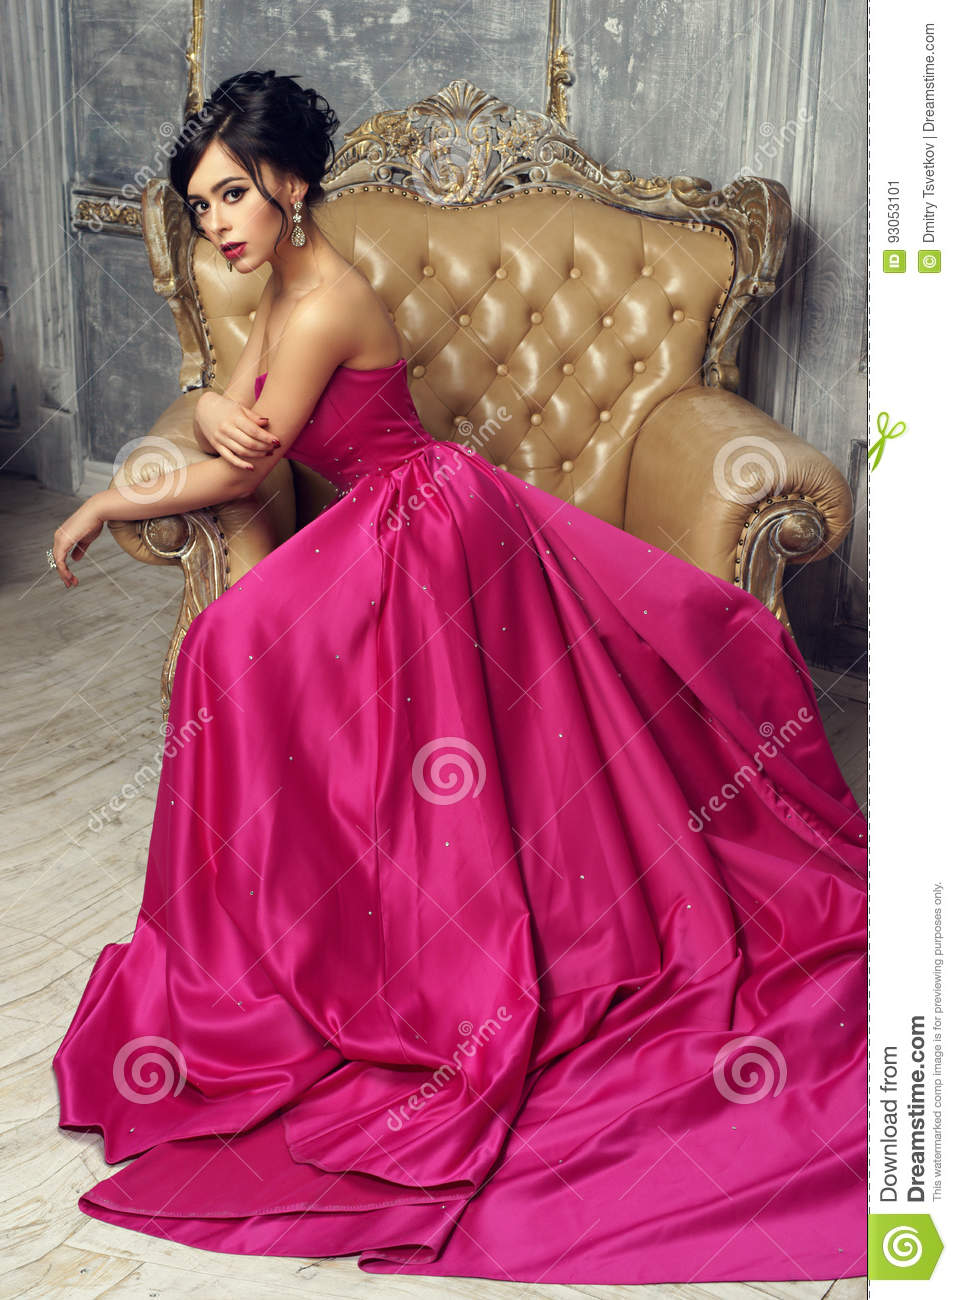 Elegant Lady Wearing Ball Gown Stock Image - Image of elegance ...